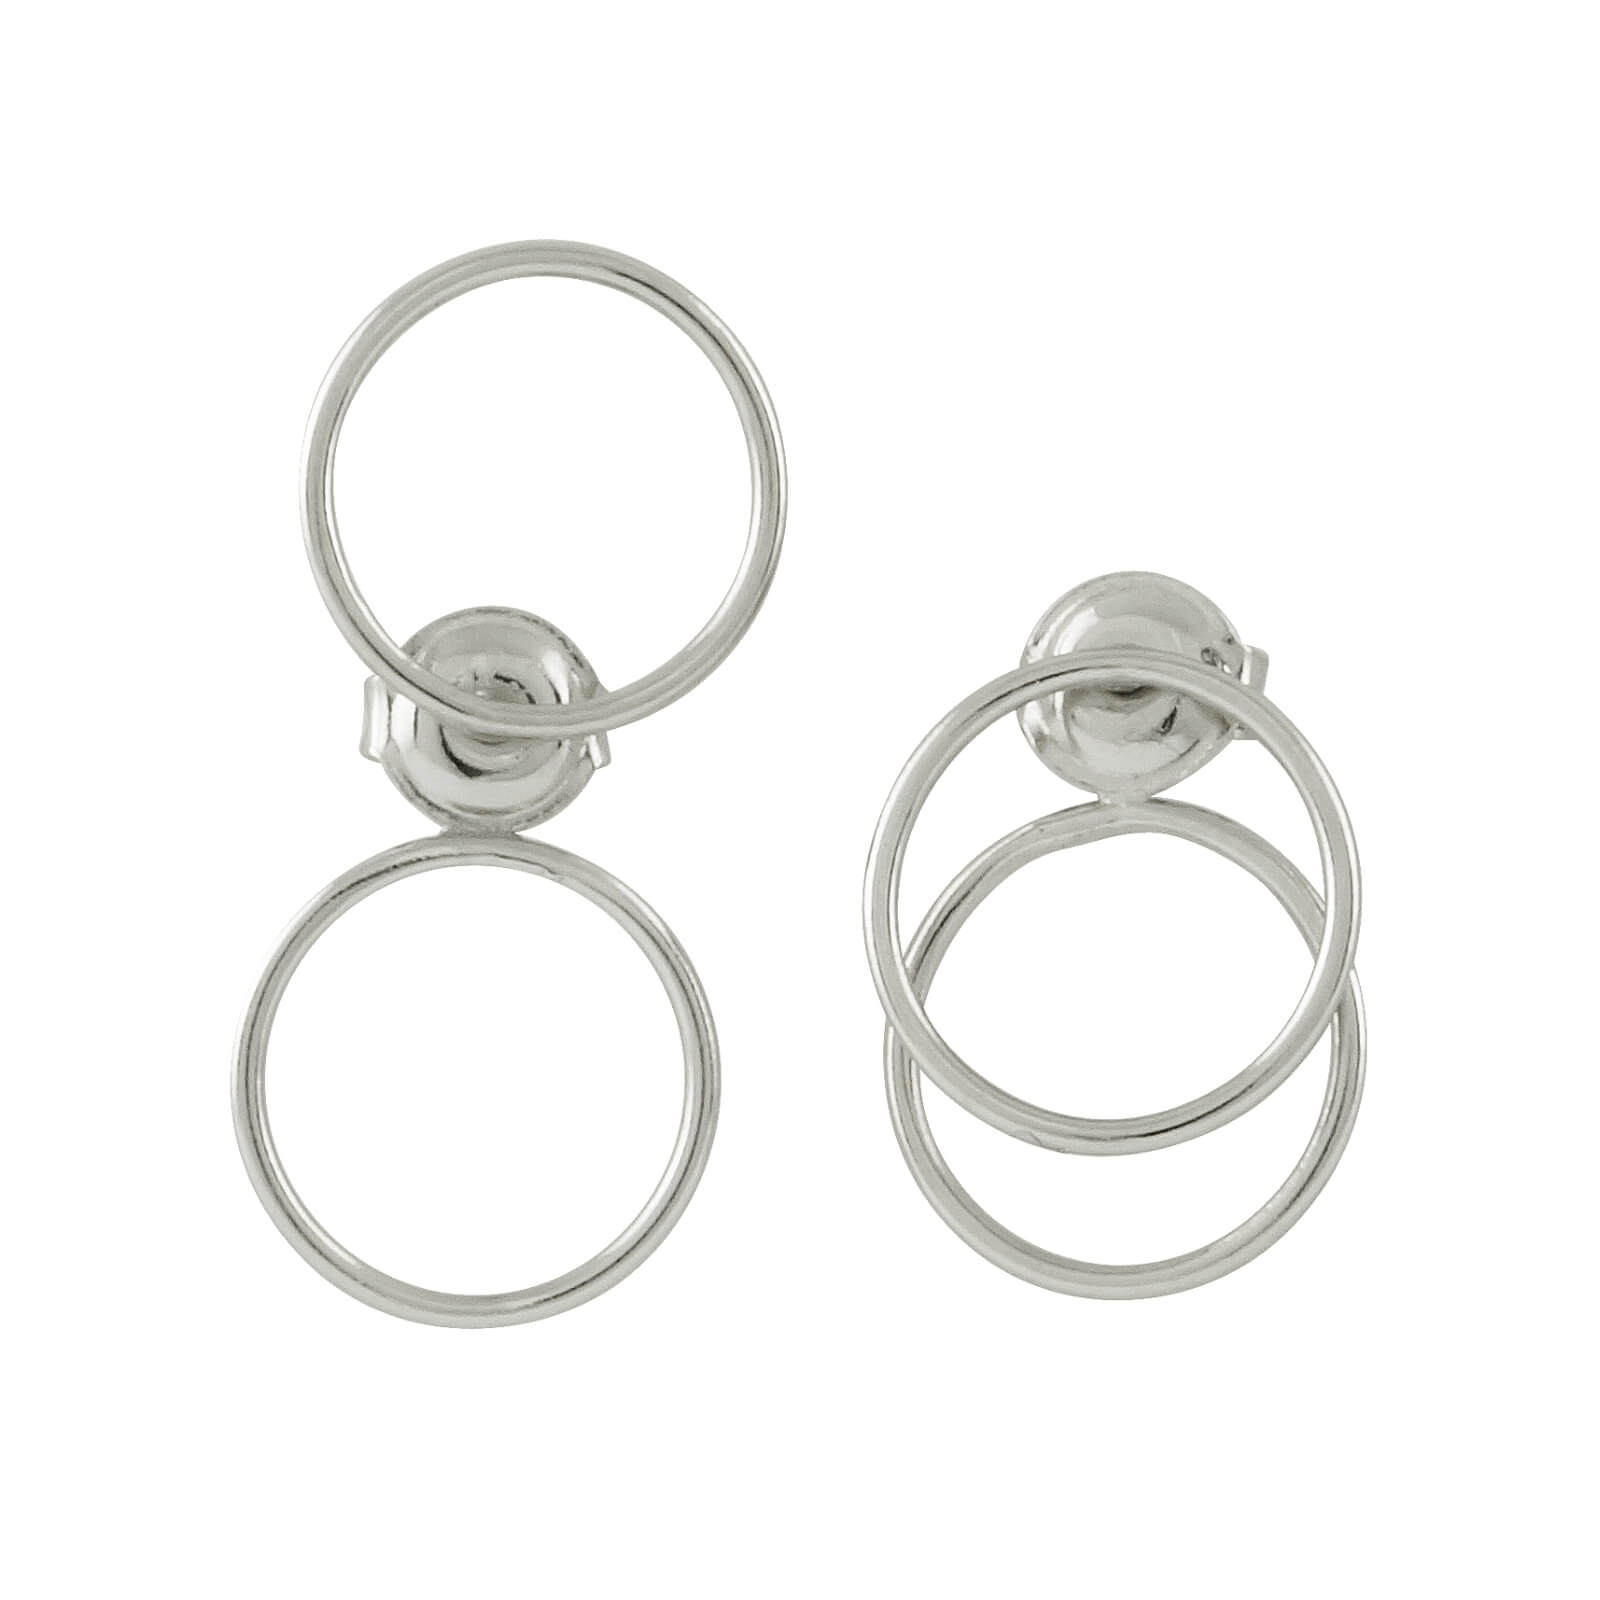 francesca original mackie small circle thumbnail products layered sterling hammered earrings